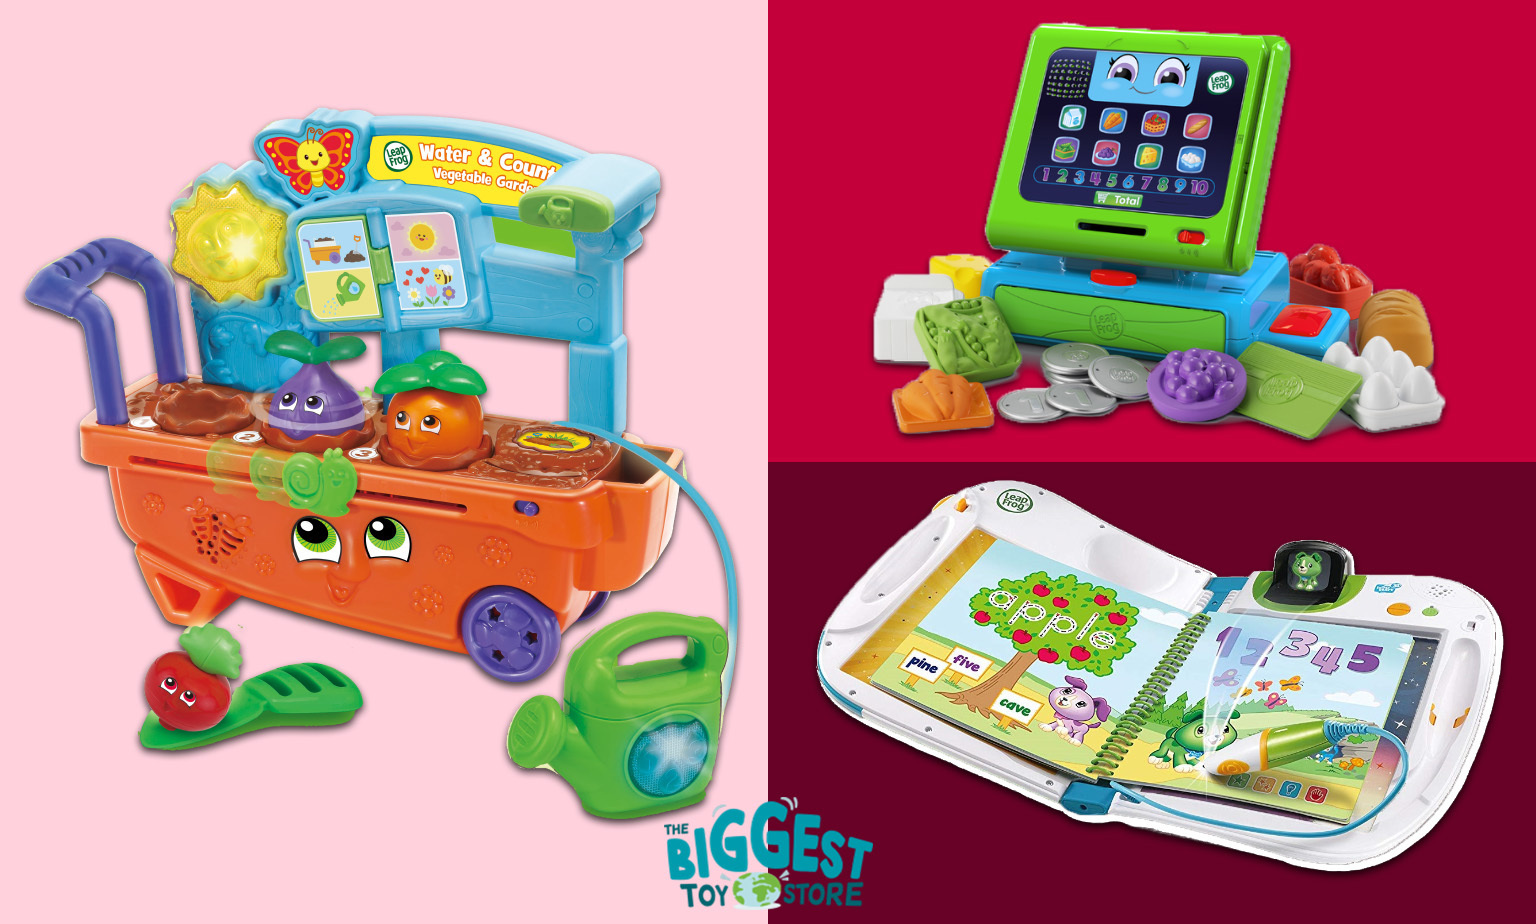 Up to 20% off Leapfrog